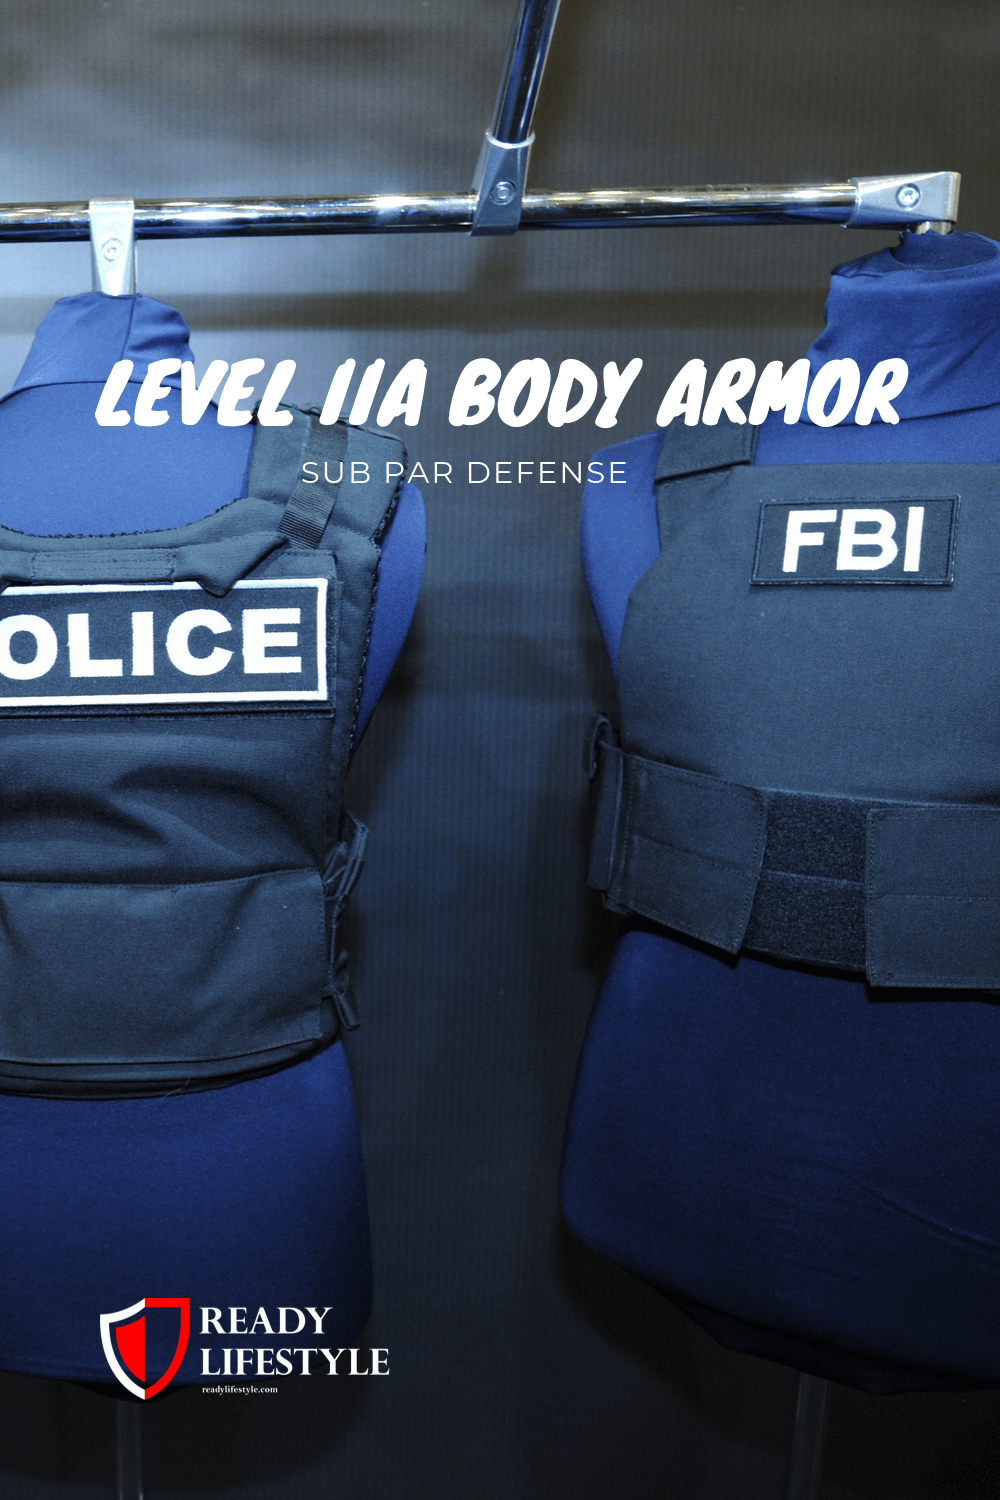 Level IIa Body Armor